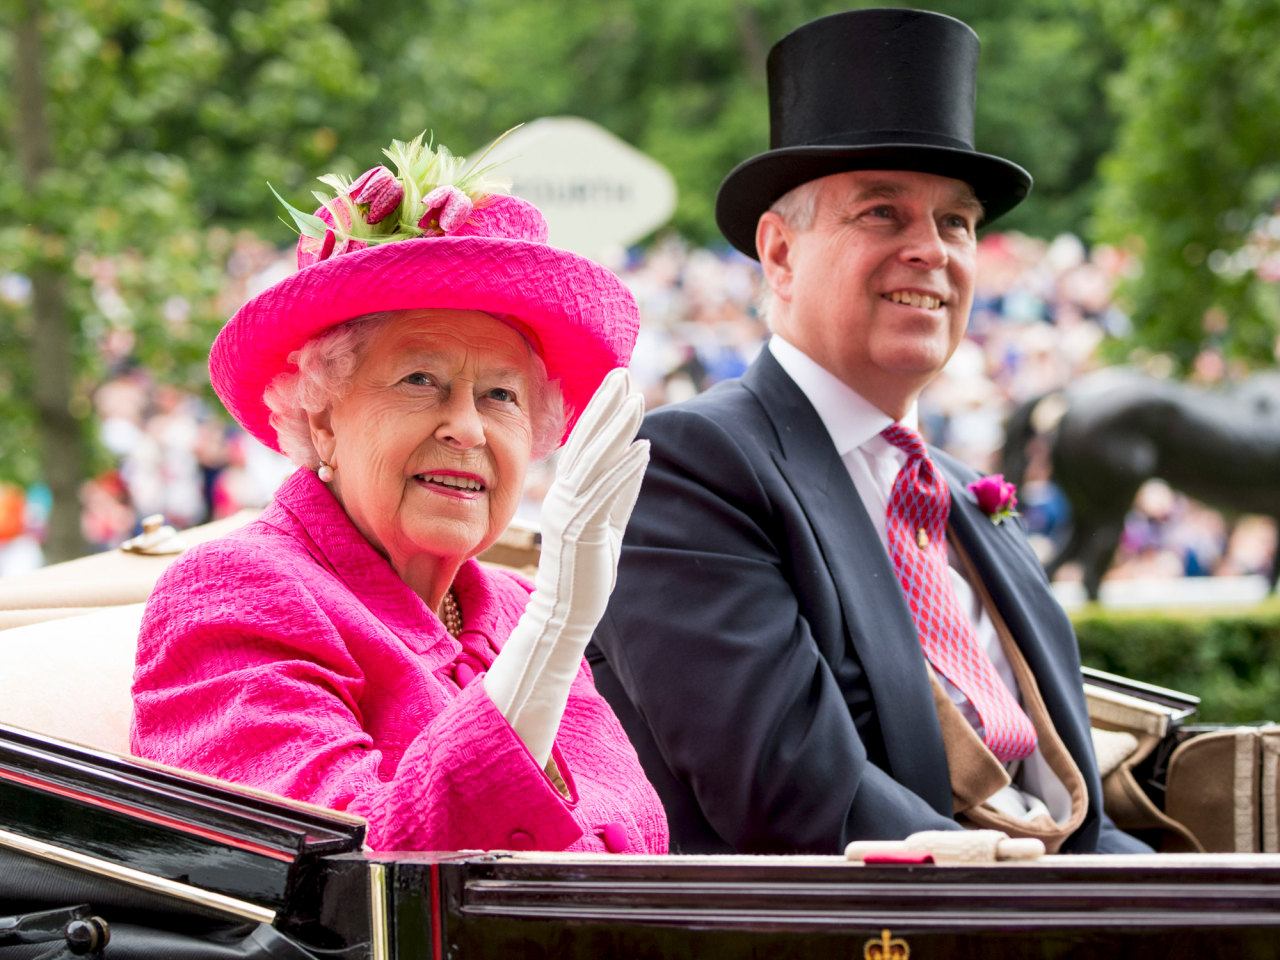 "<p>When it comes to royal style, everything is intentional — and we mean <em>everything</em>. What <a href=""https://www.cosmopolitan.com/entertainment/g19666813/british-order-of-succession-royal-family-throne/"" target=""_blank"">the royal family</a> wears isn't simply determined by what's sophisticated. Like many facets of their public lives, their wardrobe is influenced by tradition and practicality — and let's be clear: it's NOT easy balancing a pretty strict royal dress code and with your own look. Nevertheless, <a href=""https://www.cosmopolitan.com/entertainment/celebs/a31400197/kate-middleton-prince-harry-meghan-markle-royal-family-exit-reaction/"" target=""_blank"">Kate Middleton</a>, <a href=""https://www.cosmopolitan.com/style-beauty/fashion/g19481940/meghan-markle-best-looks/"" target=""_blank"">Meghan Markle</a>, and Lady Diana all managed to start their own style trends, becoming memorable fashion icons in their own right.</p><p>The royal family plays most of these fashion secrets and stories close to the vest (no pun intended), so you probably wouldn't have noticed these tricks and traditions unless they were pointed out to you. So, here are all of the most iconic royal outfits and the secret stories behind them. </p>"